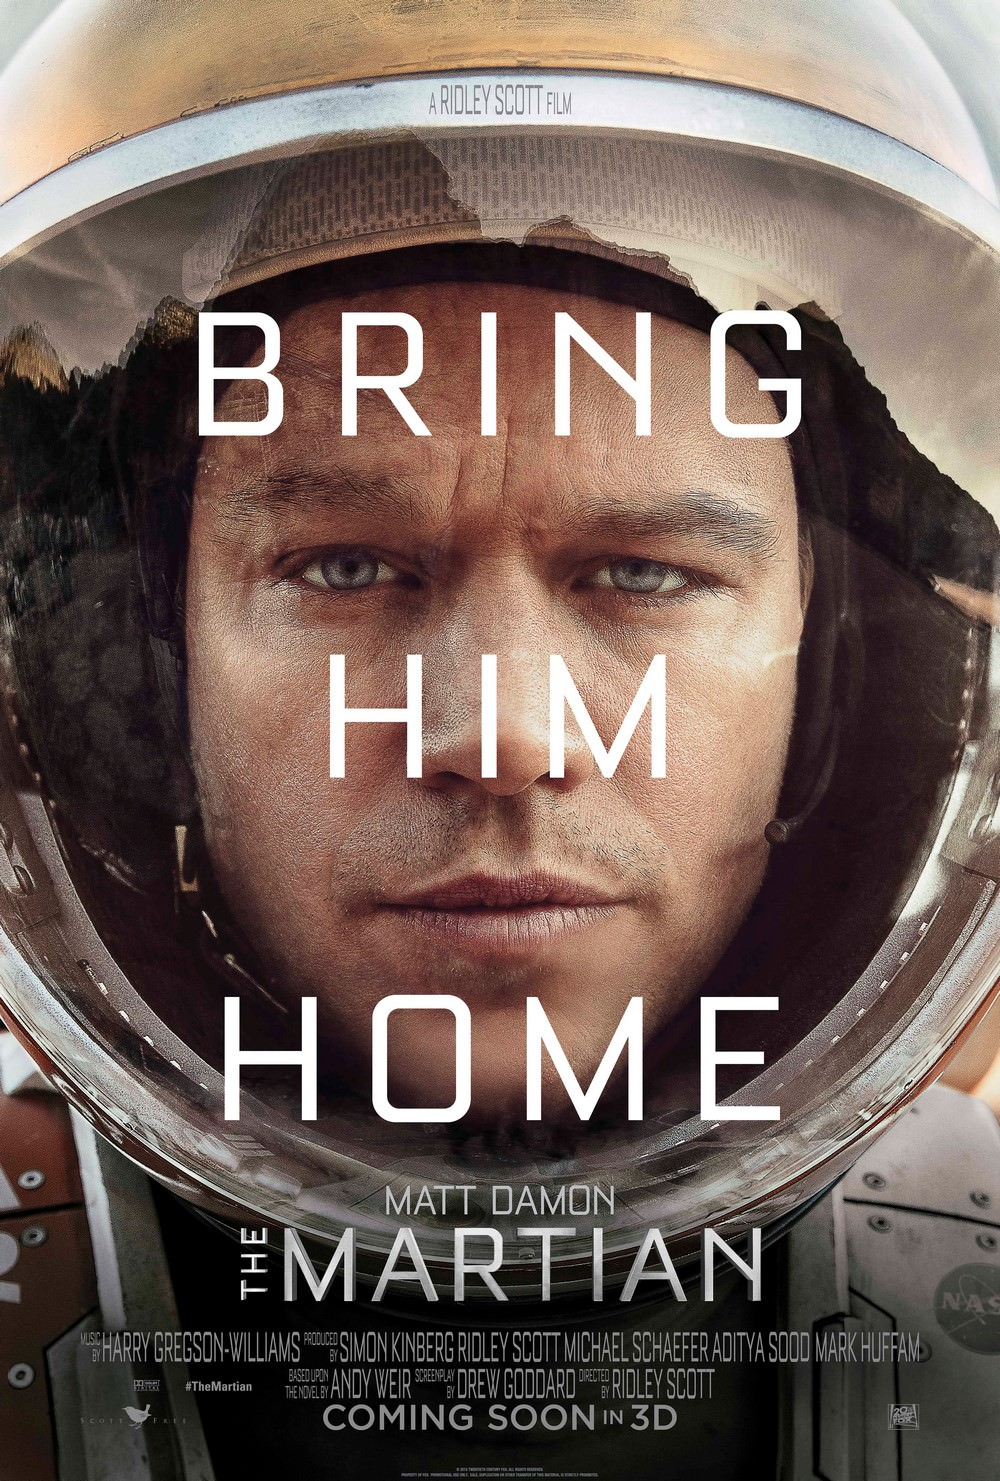 Movie-Poster-The-Martian-Bring-Him-Home-Font-Teaser-One-Sheet